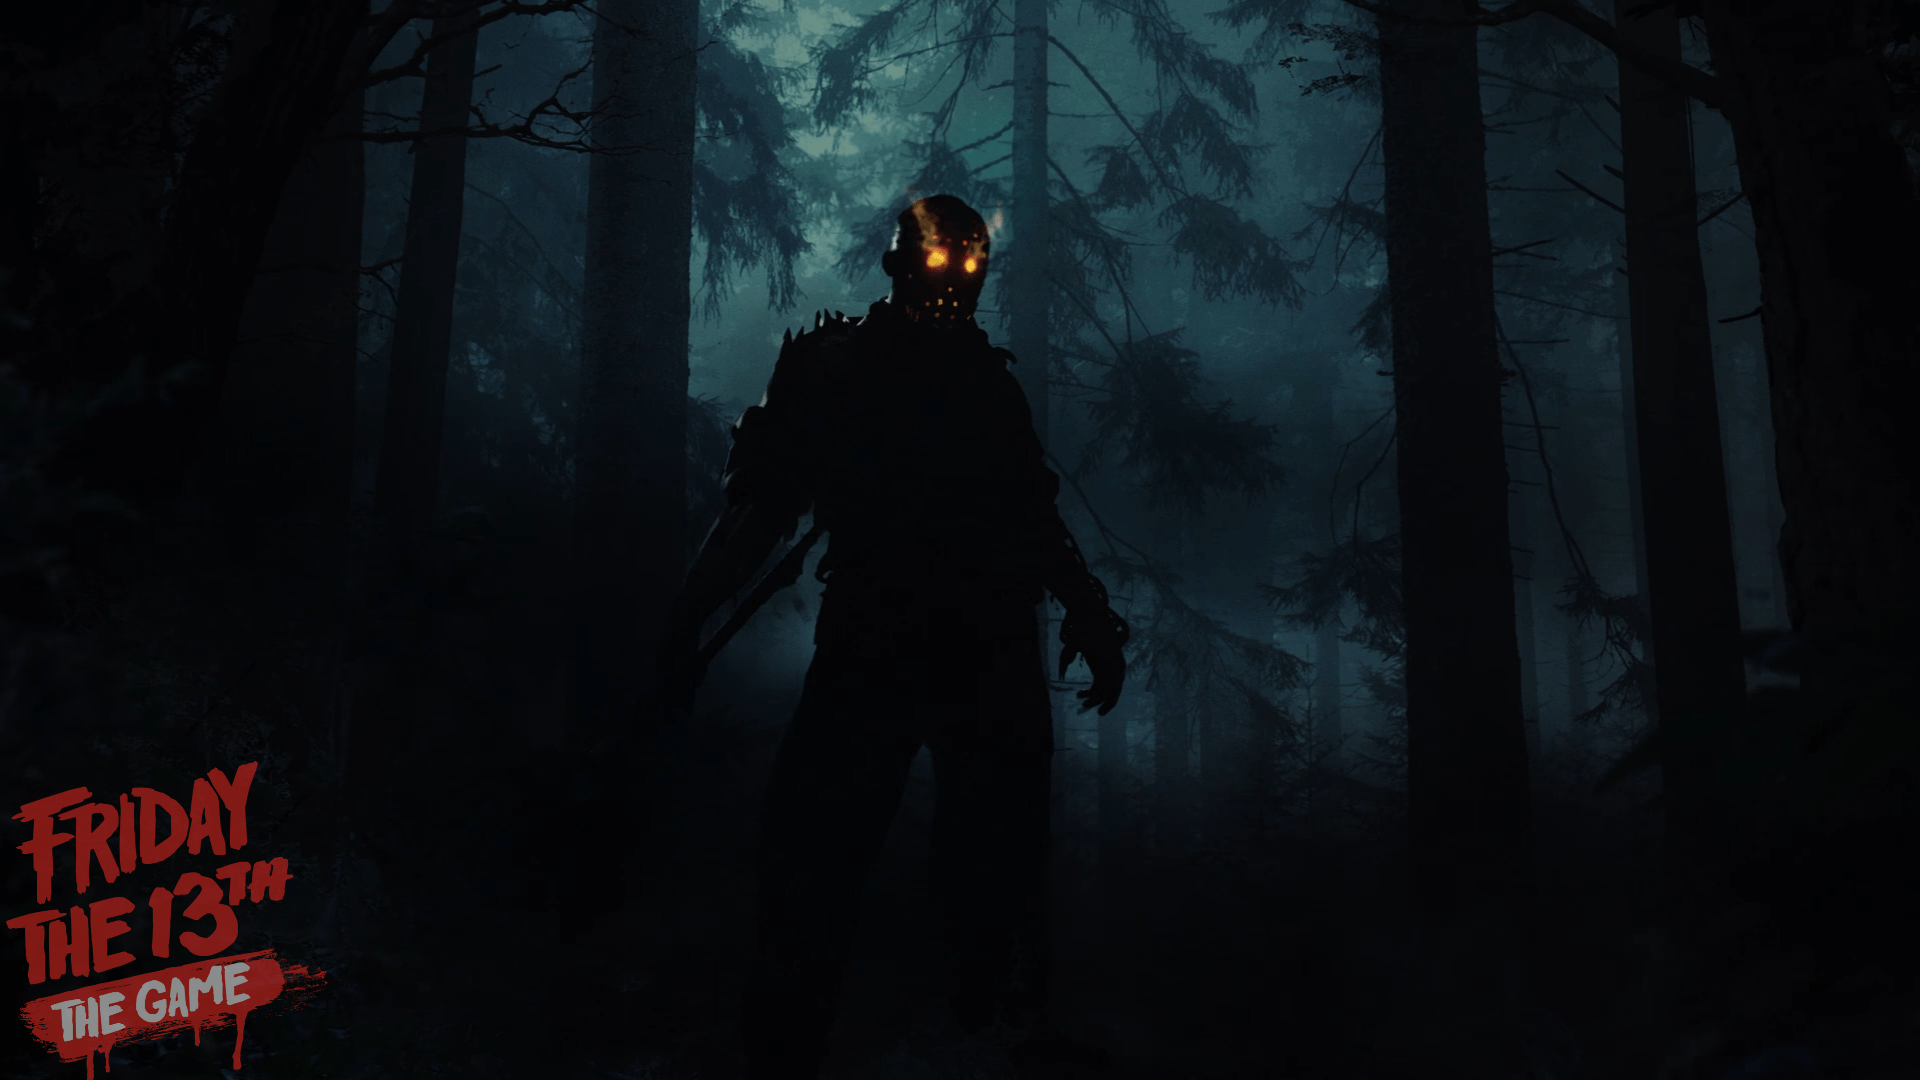 Friday The 13th: The Game Wallpapers - Wallpaper Cave